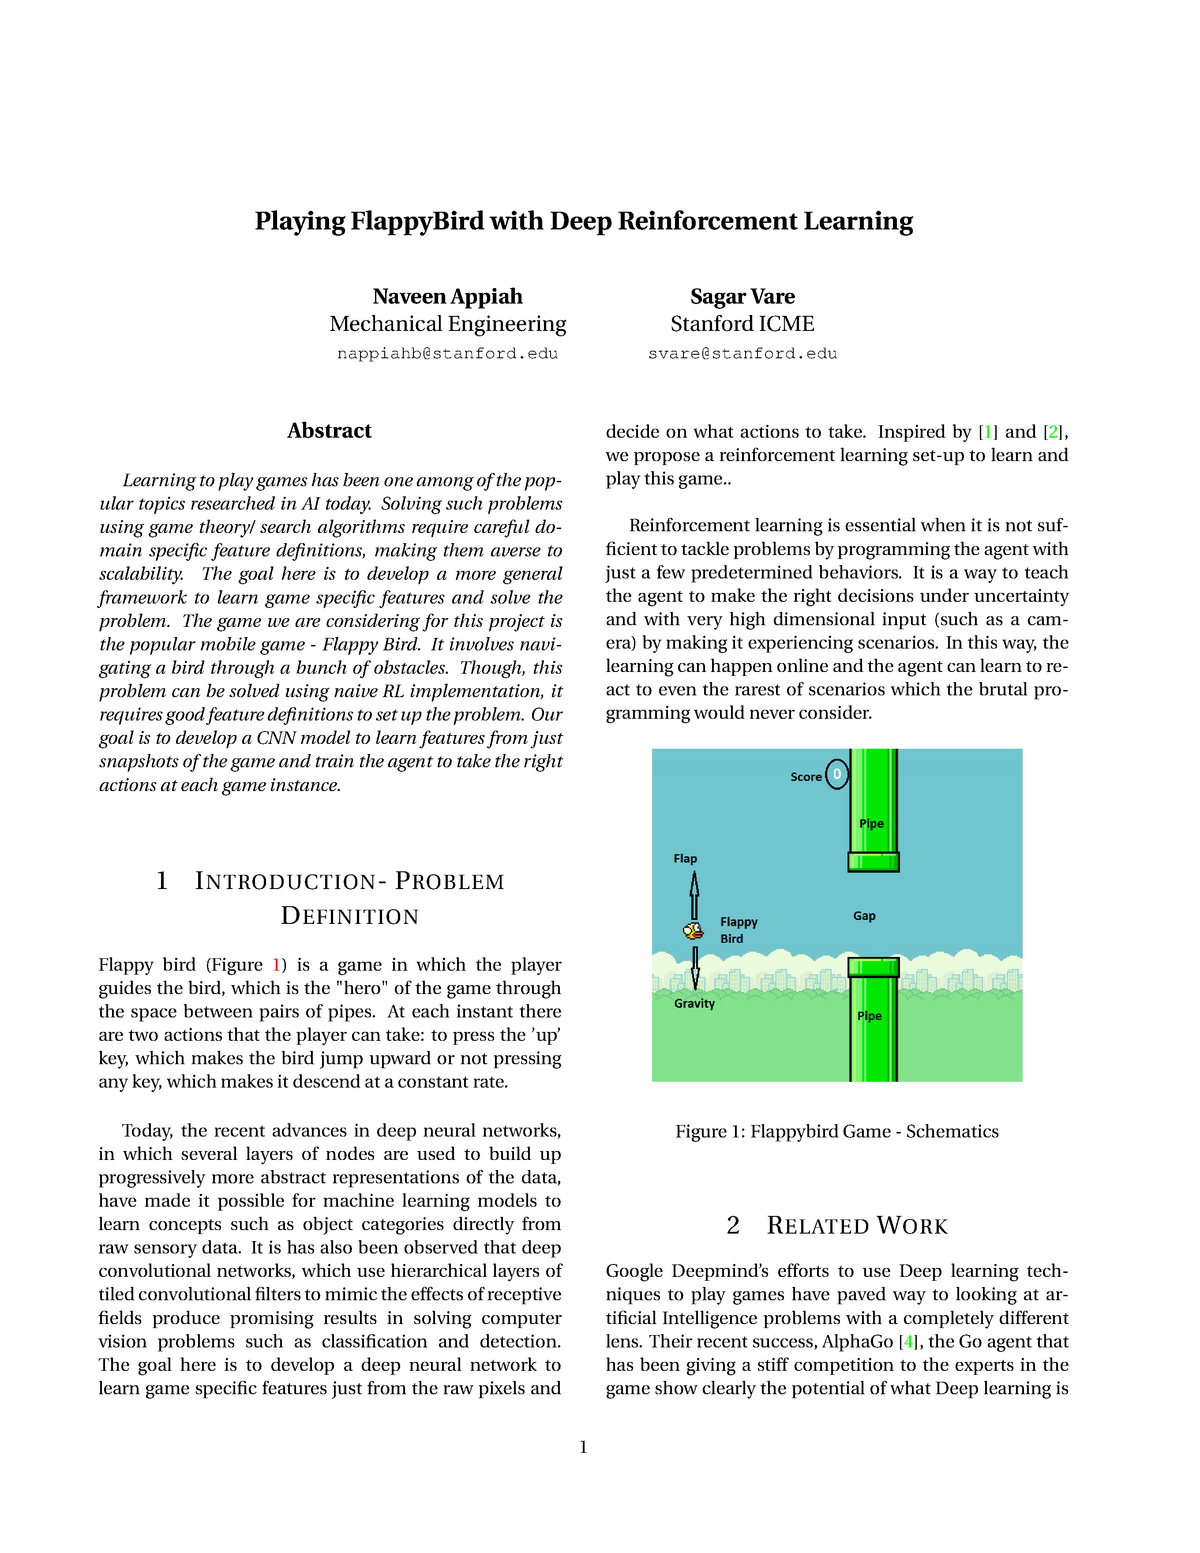 Tutorial work - Project - Playing flappybird with deep reinforcement